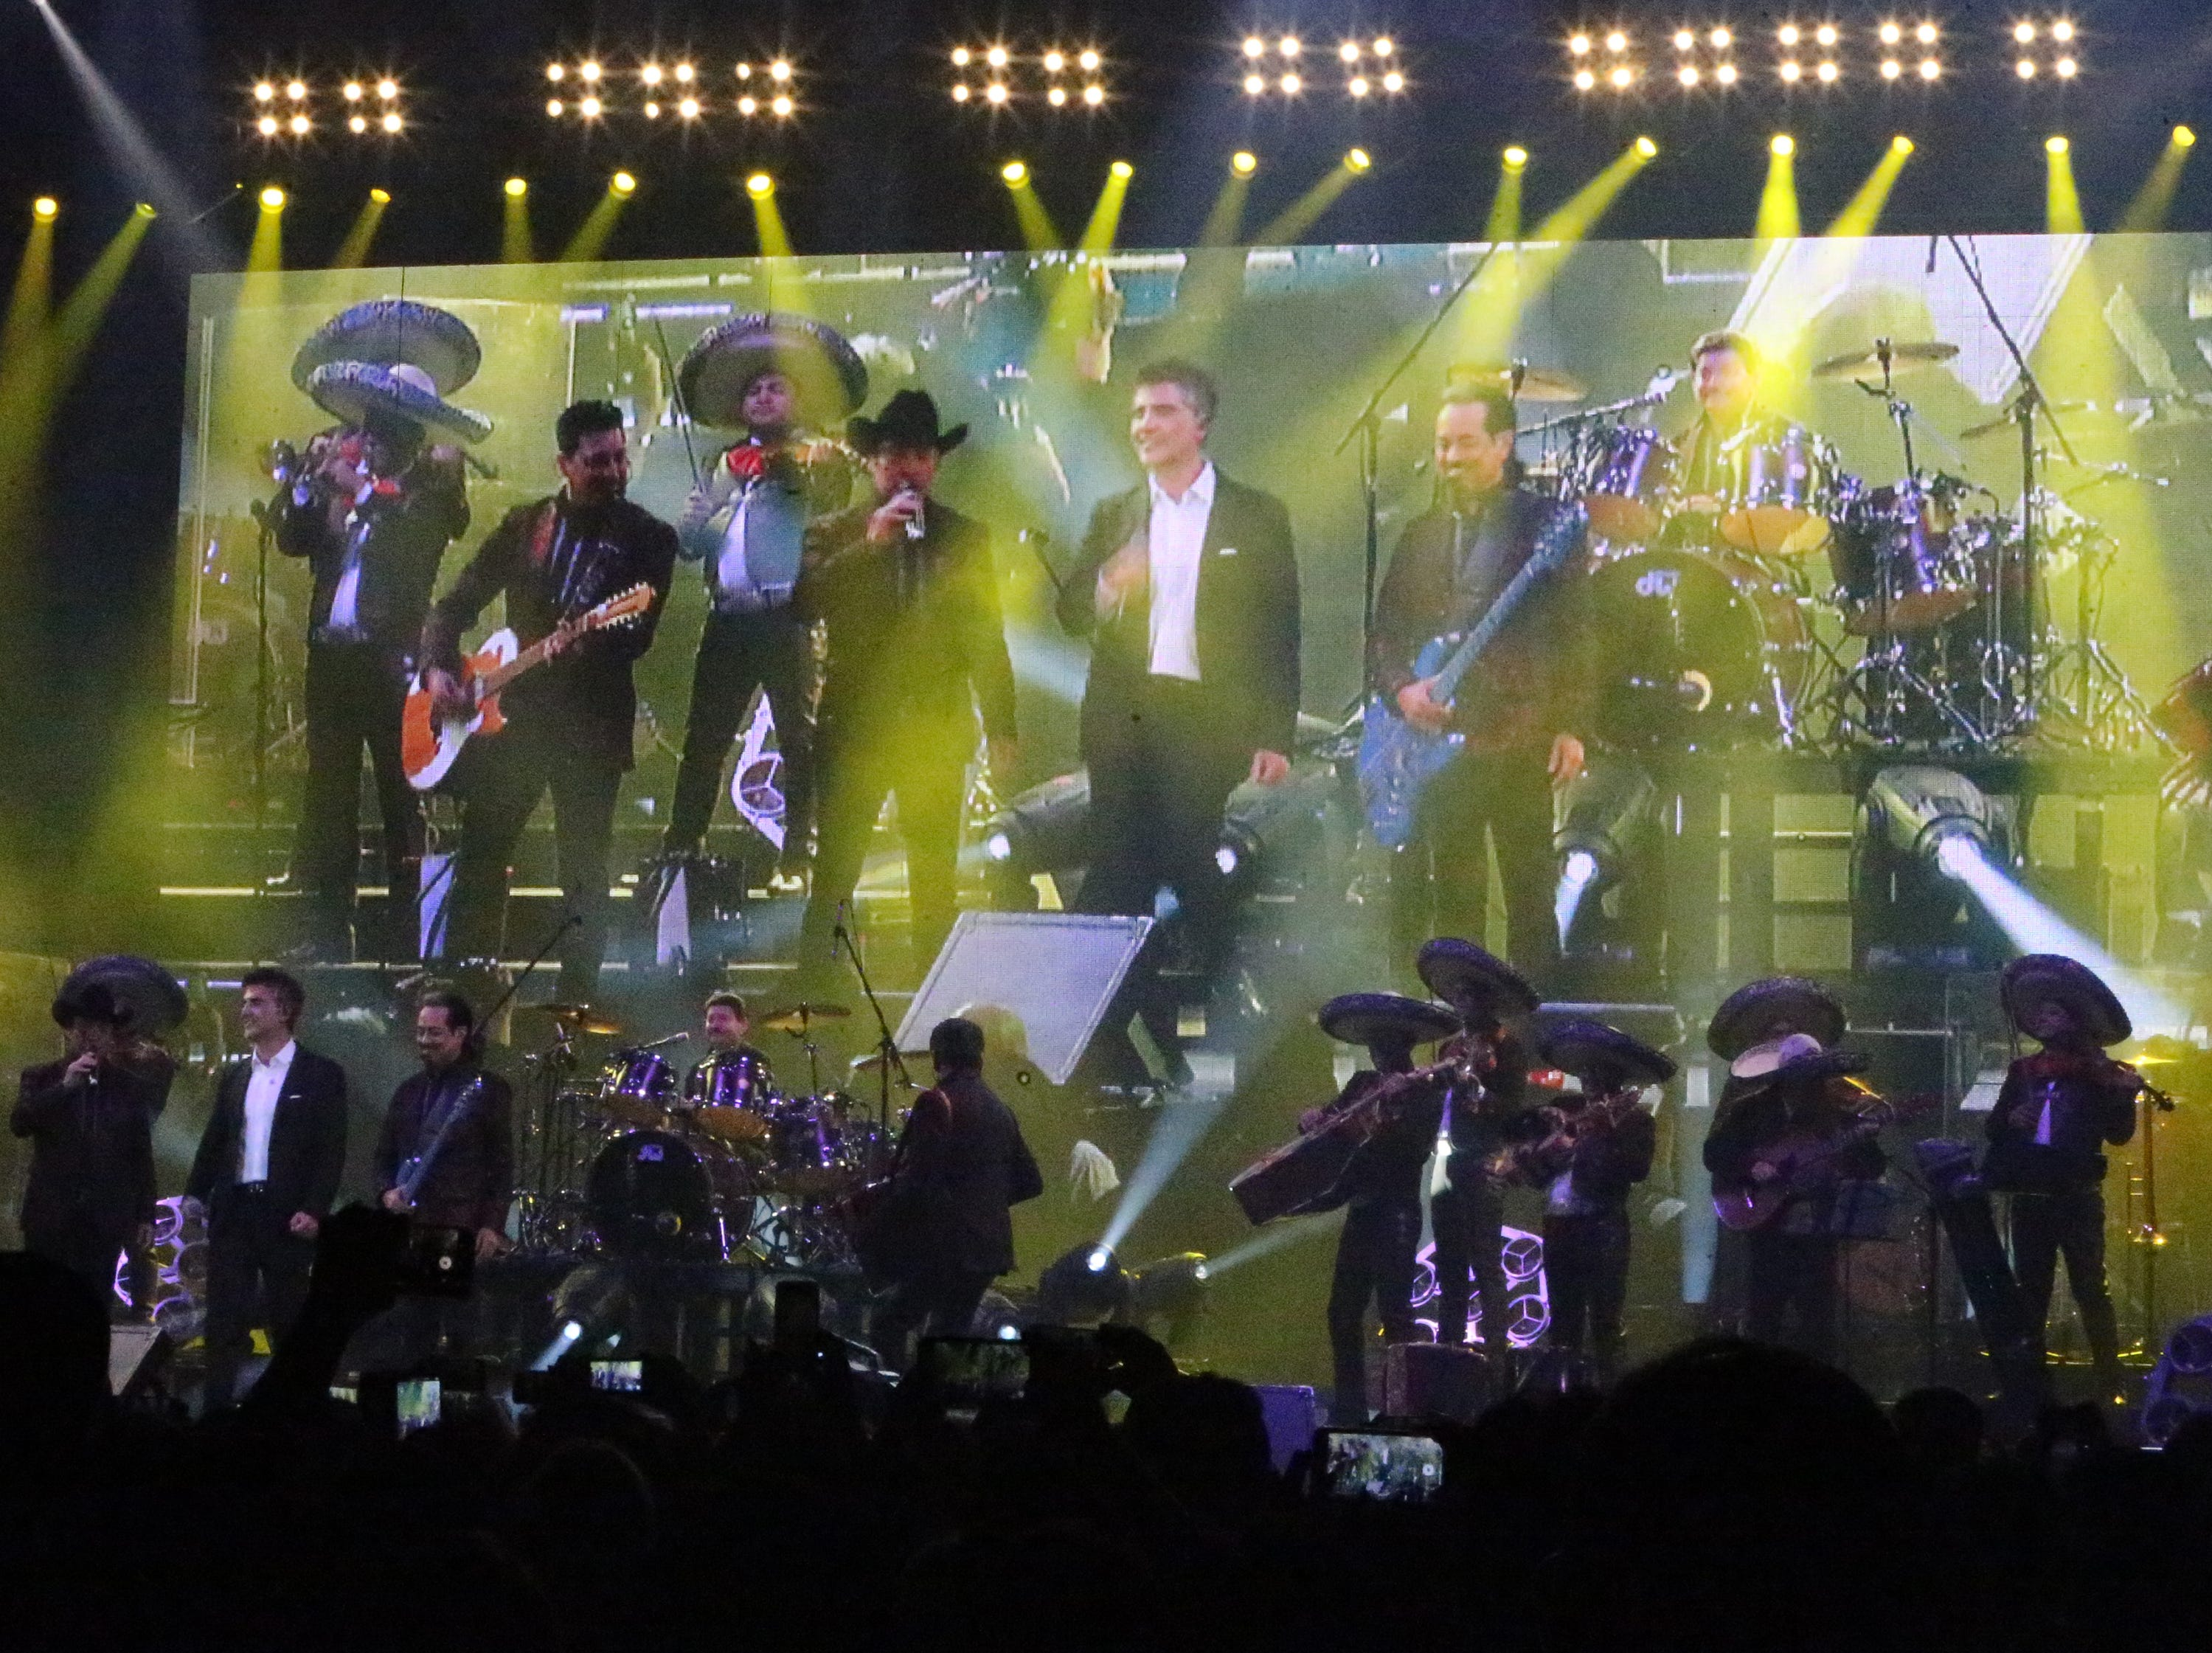 Latin superstar Alejandro Fernandez, center, is joined on stage by Los Tigres del Norte Saturday night in the Don Haskins Center. Fernandez, son of famed Ranchero singer Vicente Fernandez, has sold more than 30 million albums worldwide. He has received two Latin Grammy Awards and, like Los Tigres del Norte, a star on the Hollywood Walk of Fame.